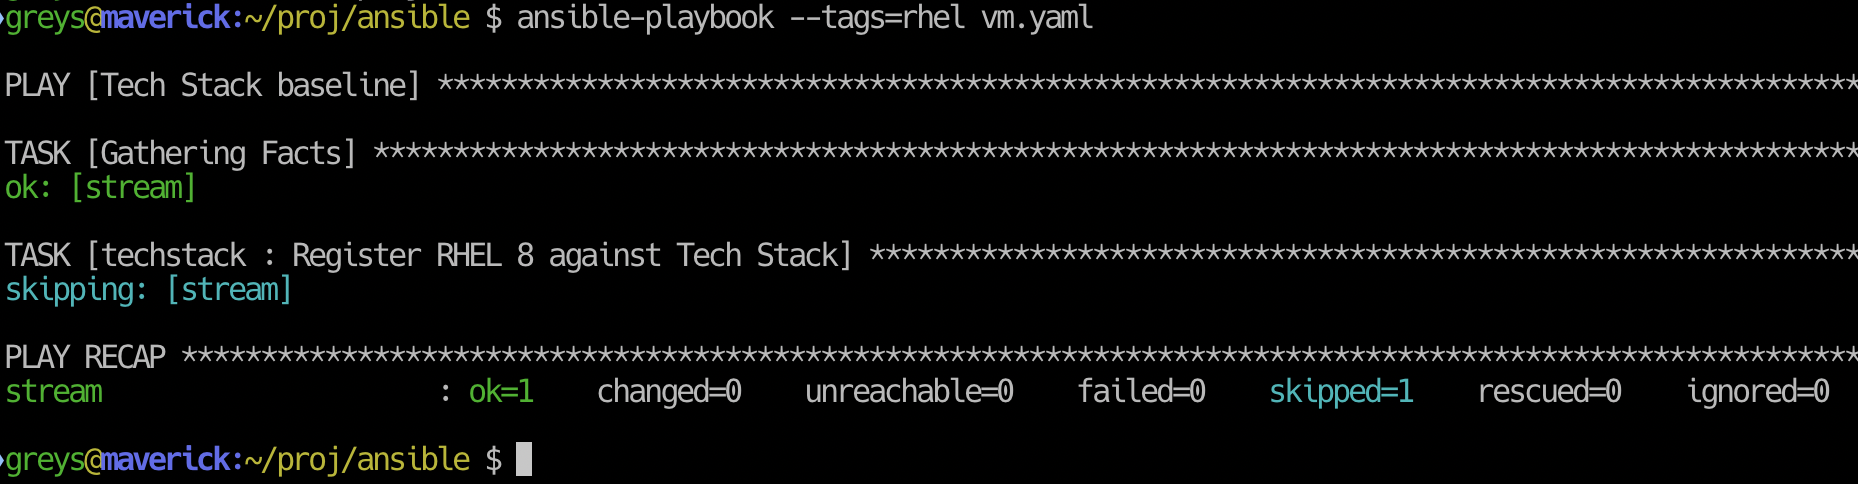 Ansible playbook with Red Hat tag